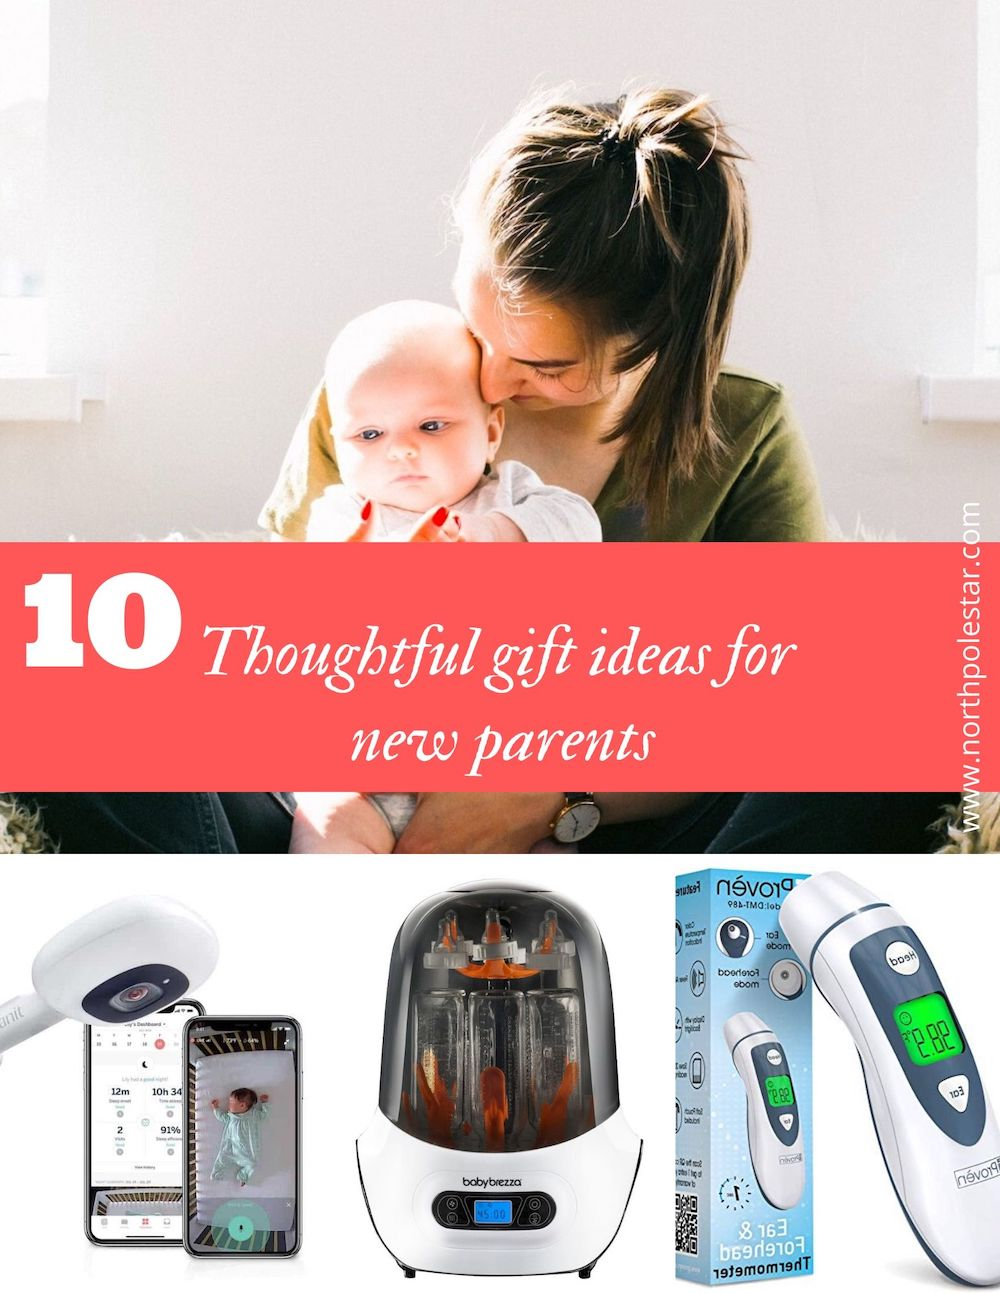 Top 10 Practical and thoughtful gift ideas for new parents